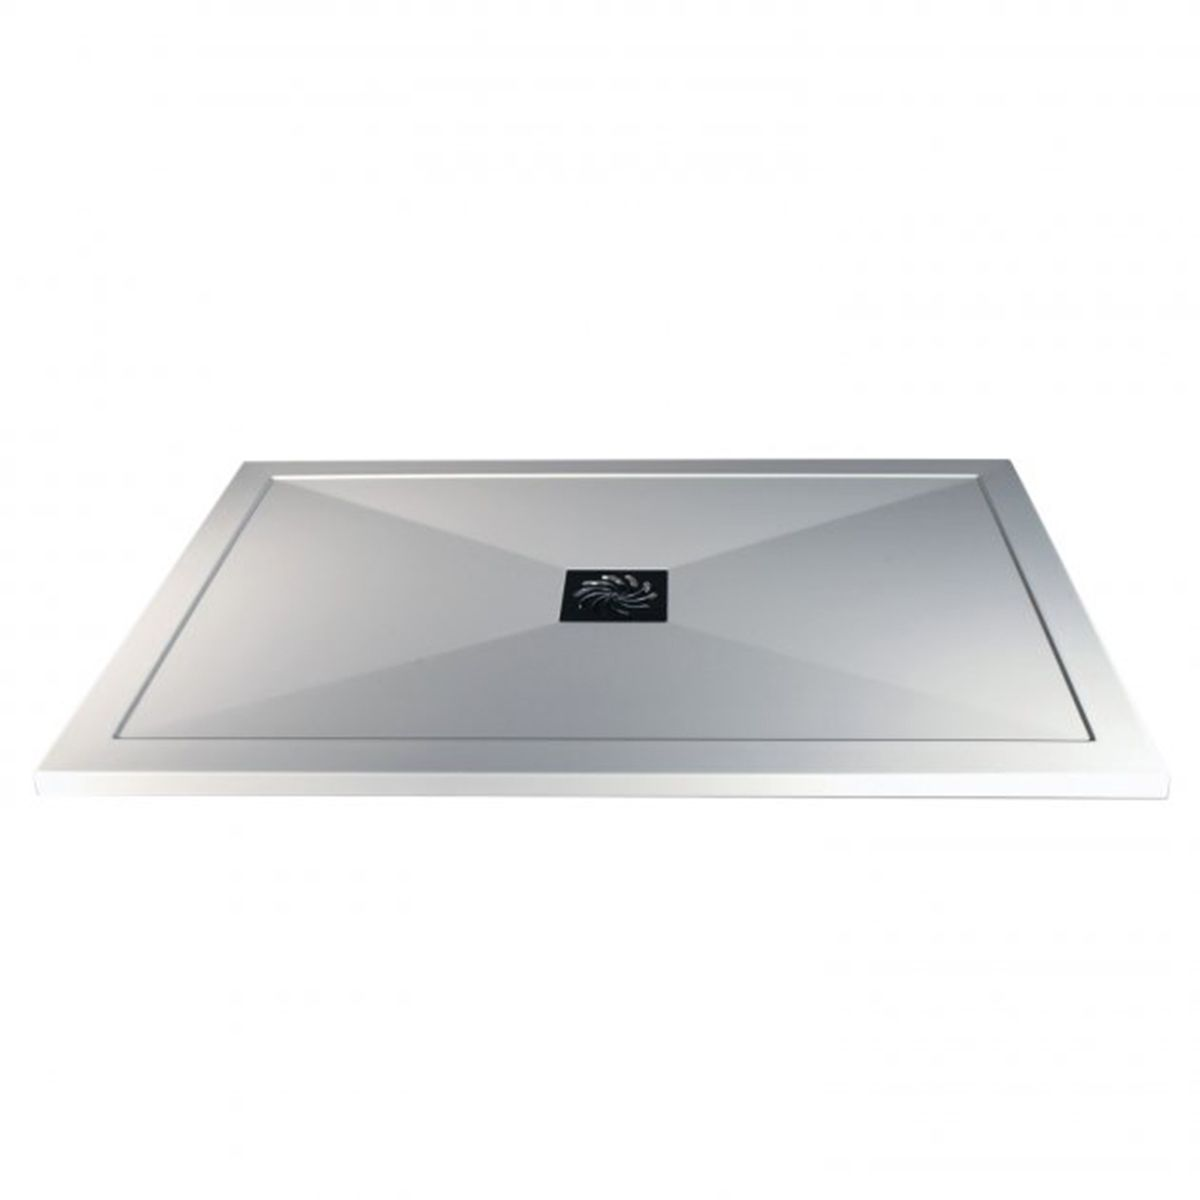 Bathrooms To Love White Rectangular Ultraslim Shower Tray with Waste 1400mm x 760mm